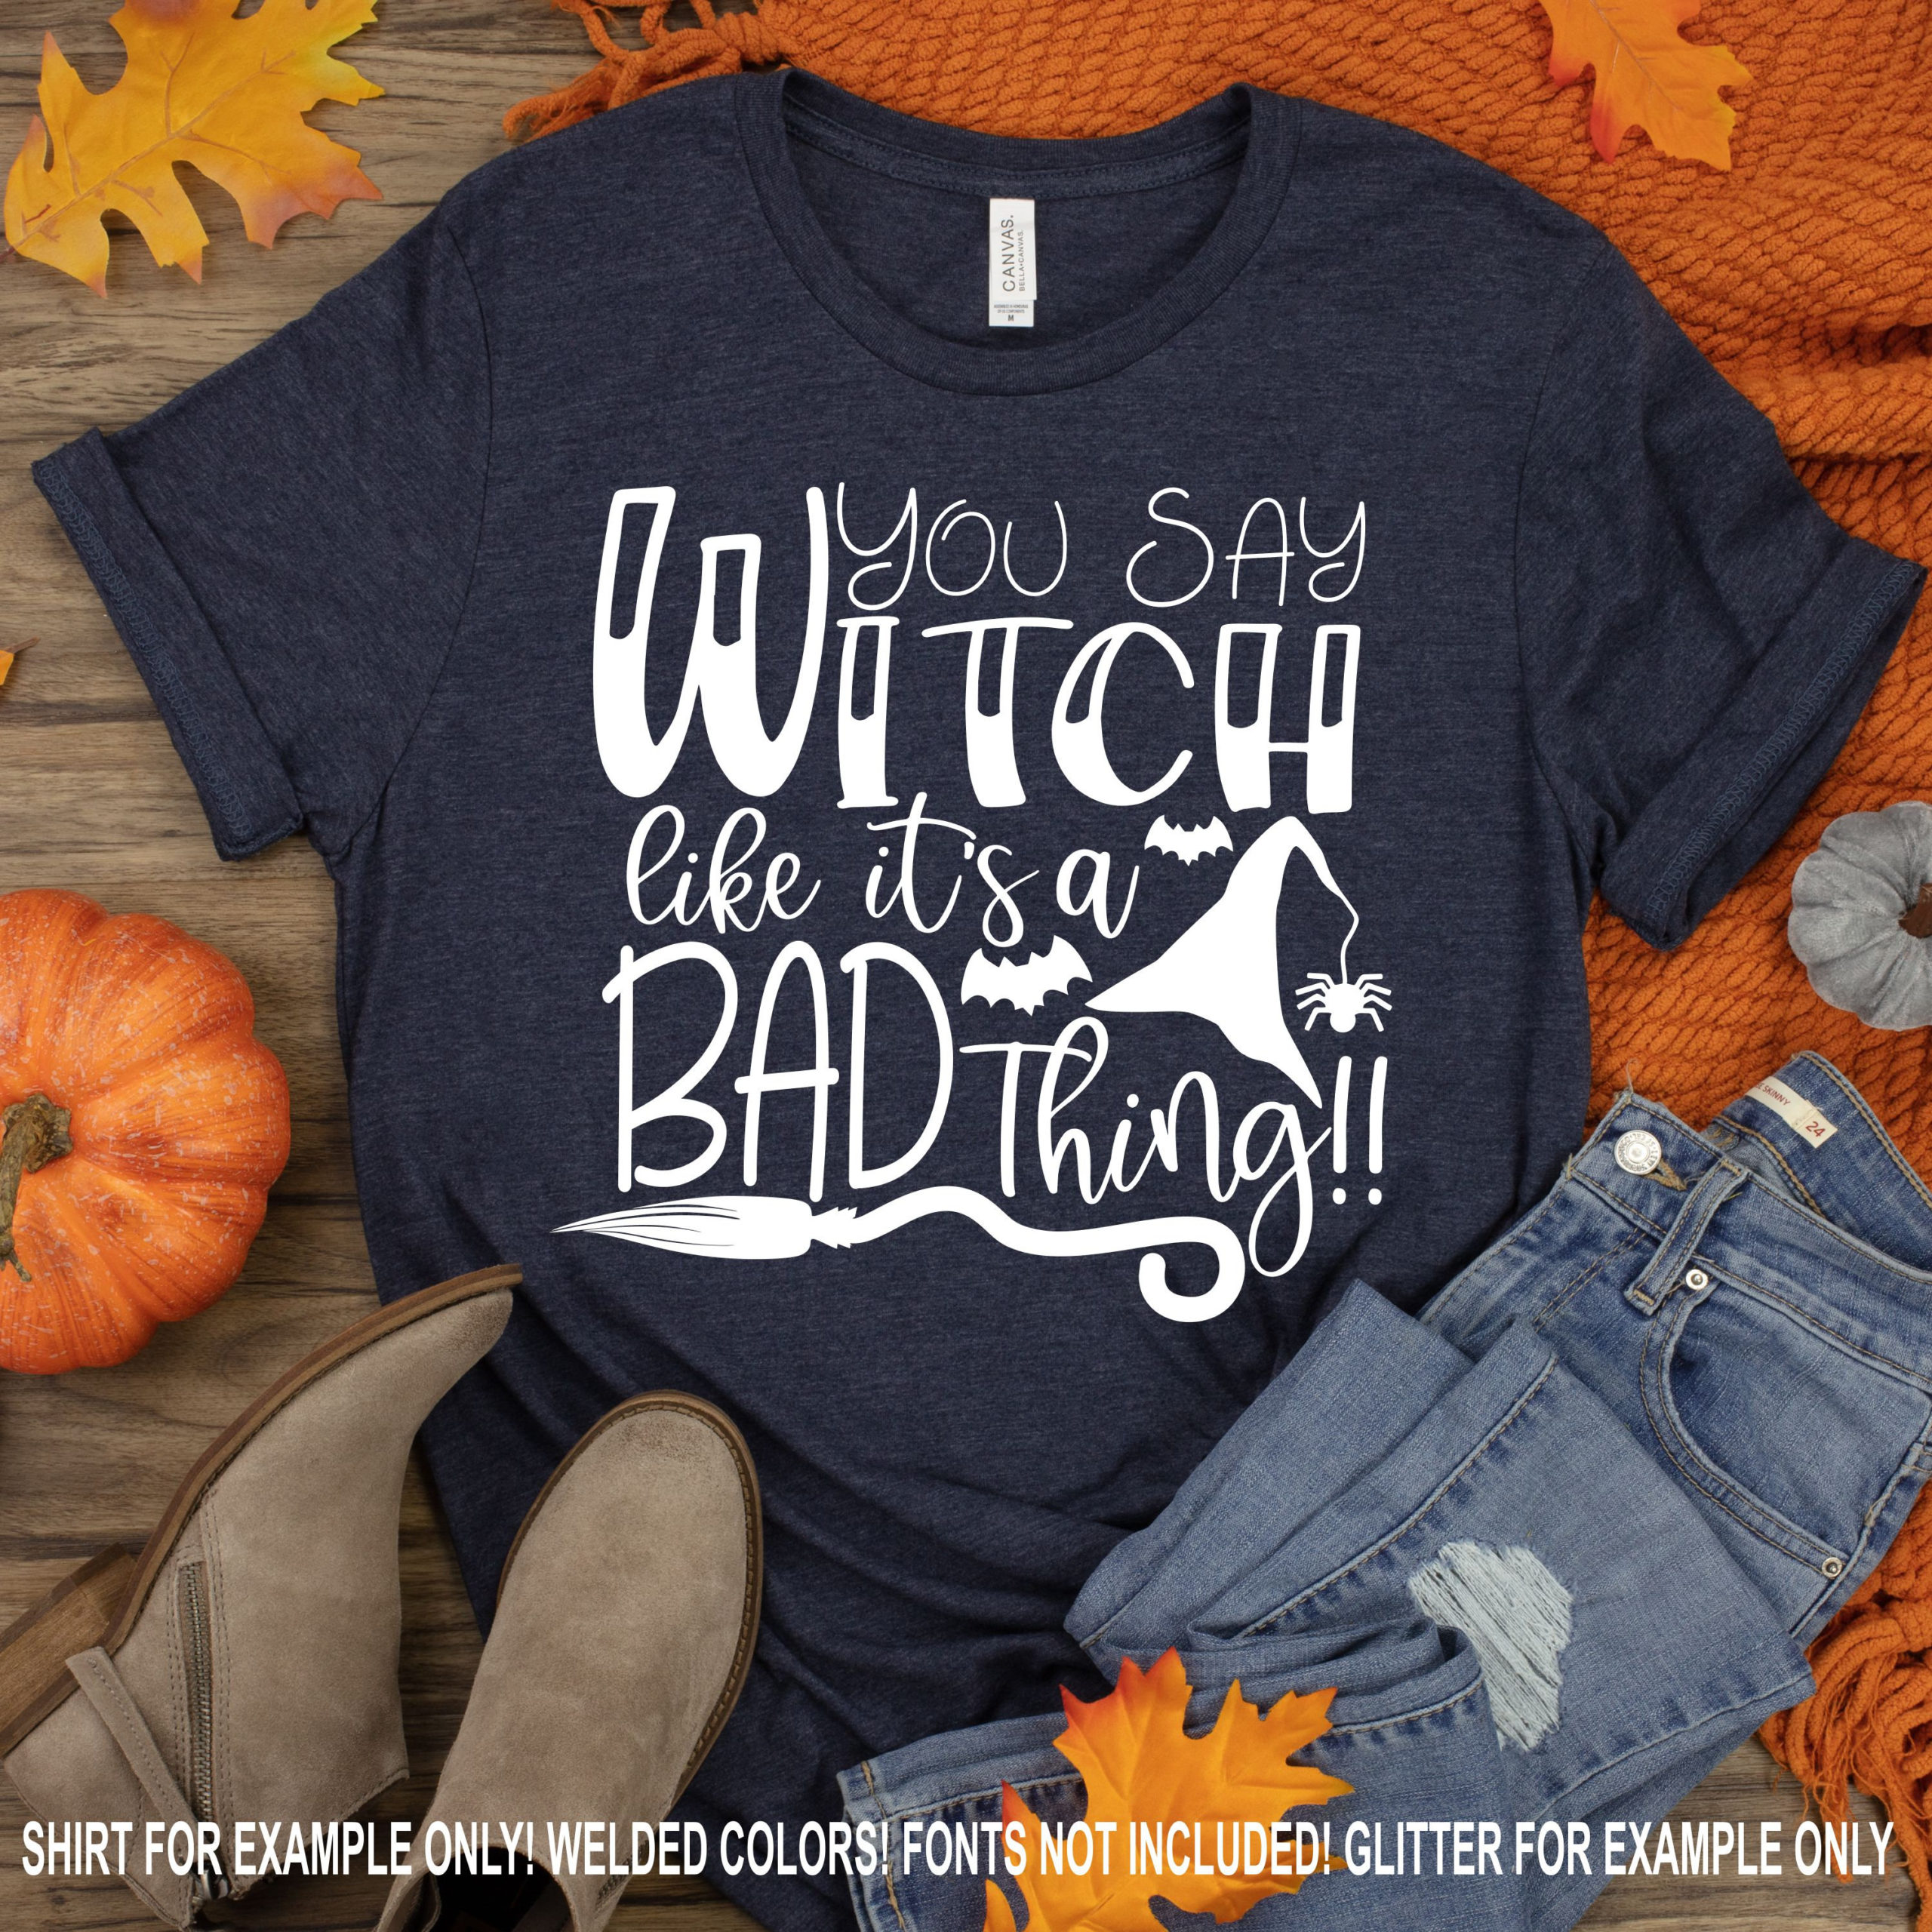 Yall-say-witch-like-its-a-bad-thing-svg-halloween-saying-svg-halloween-svg-designs-halloween-cut-files-cricut-cut-files-svg-for-cricut-5f6f7be9